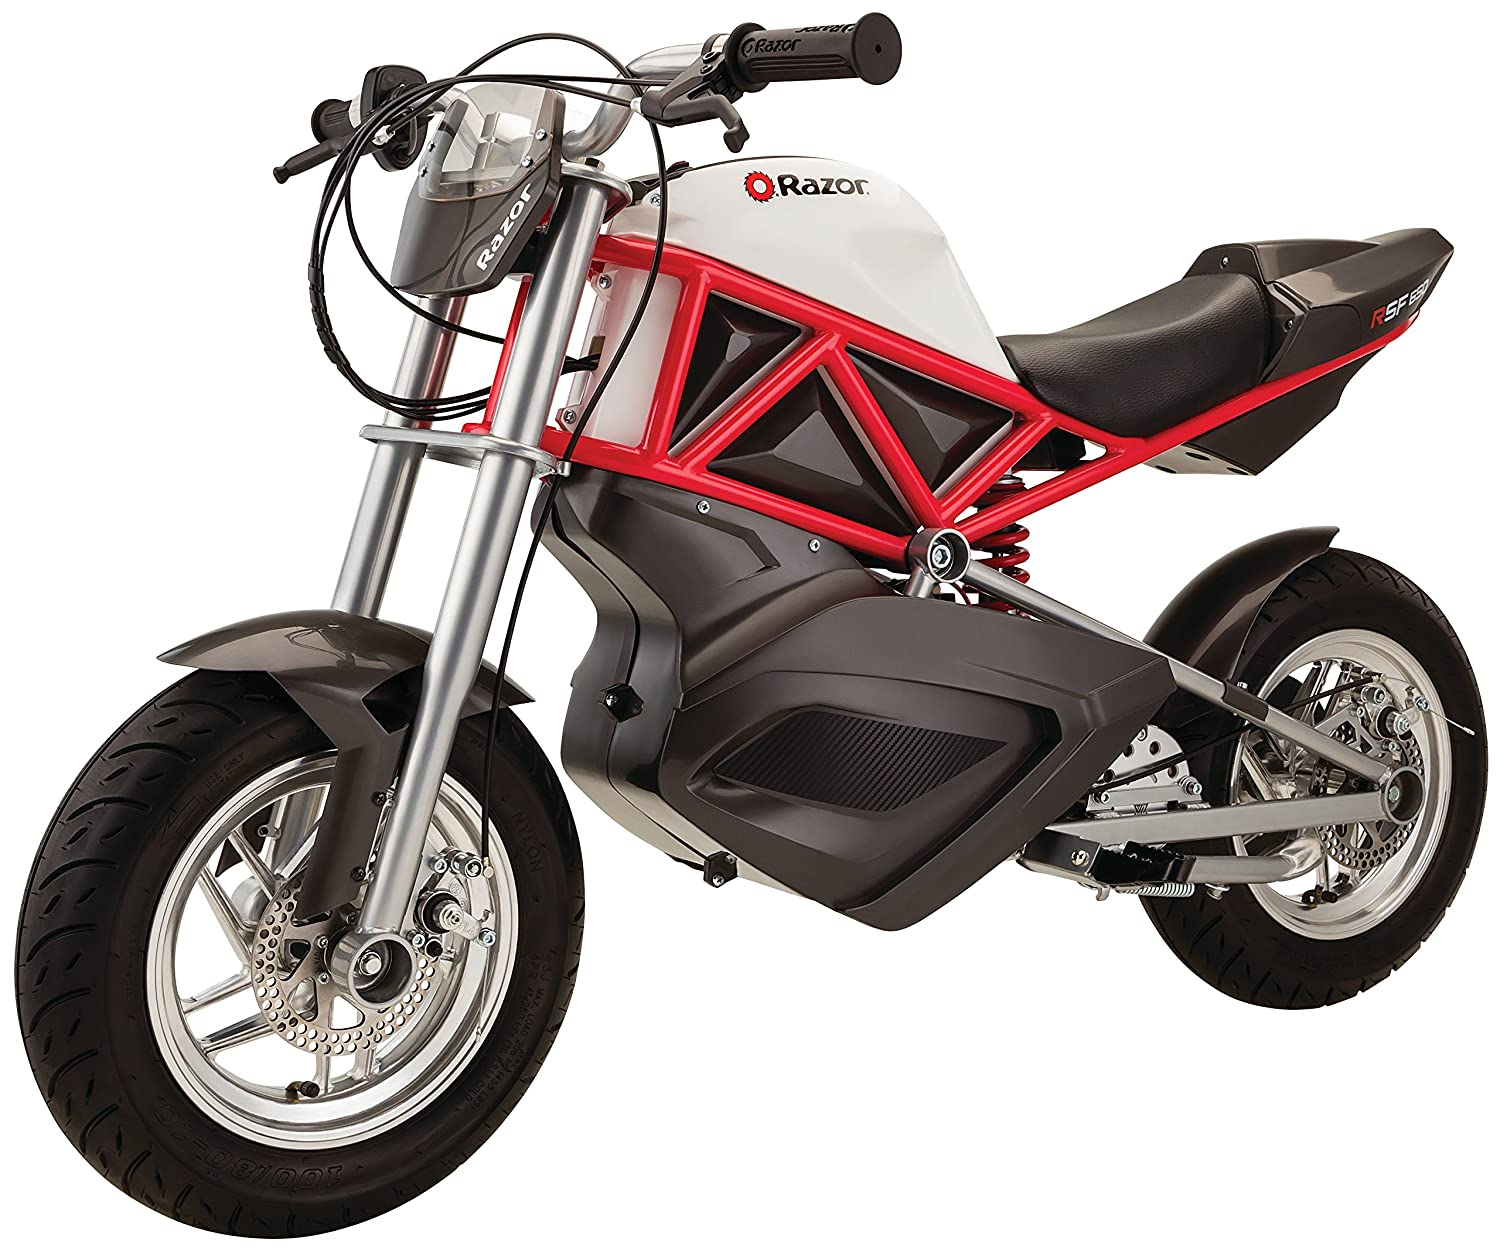 Amazon.com : Razor RSF650 Electric Street Bike : Sports & Outdoors